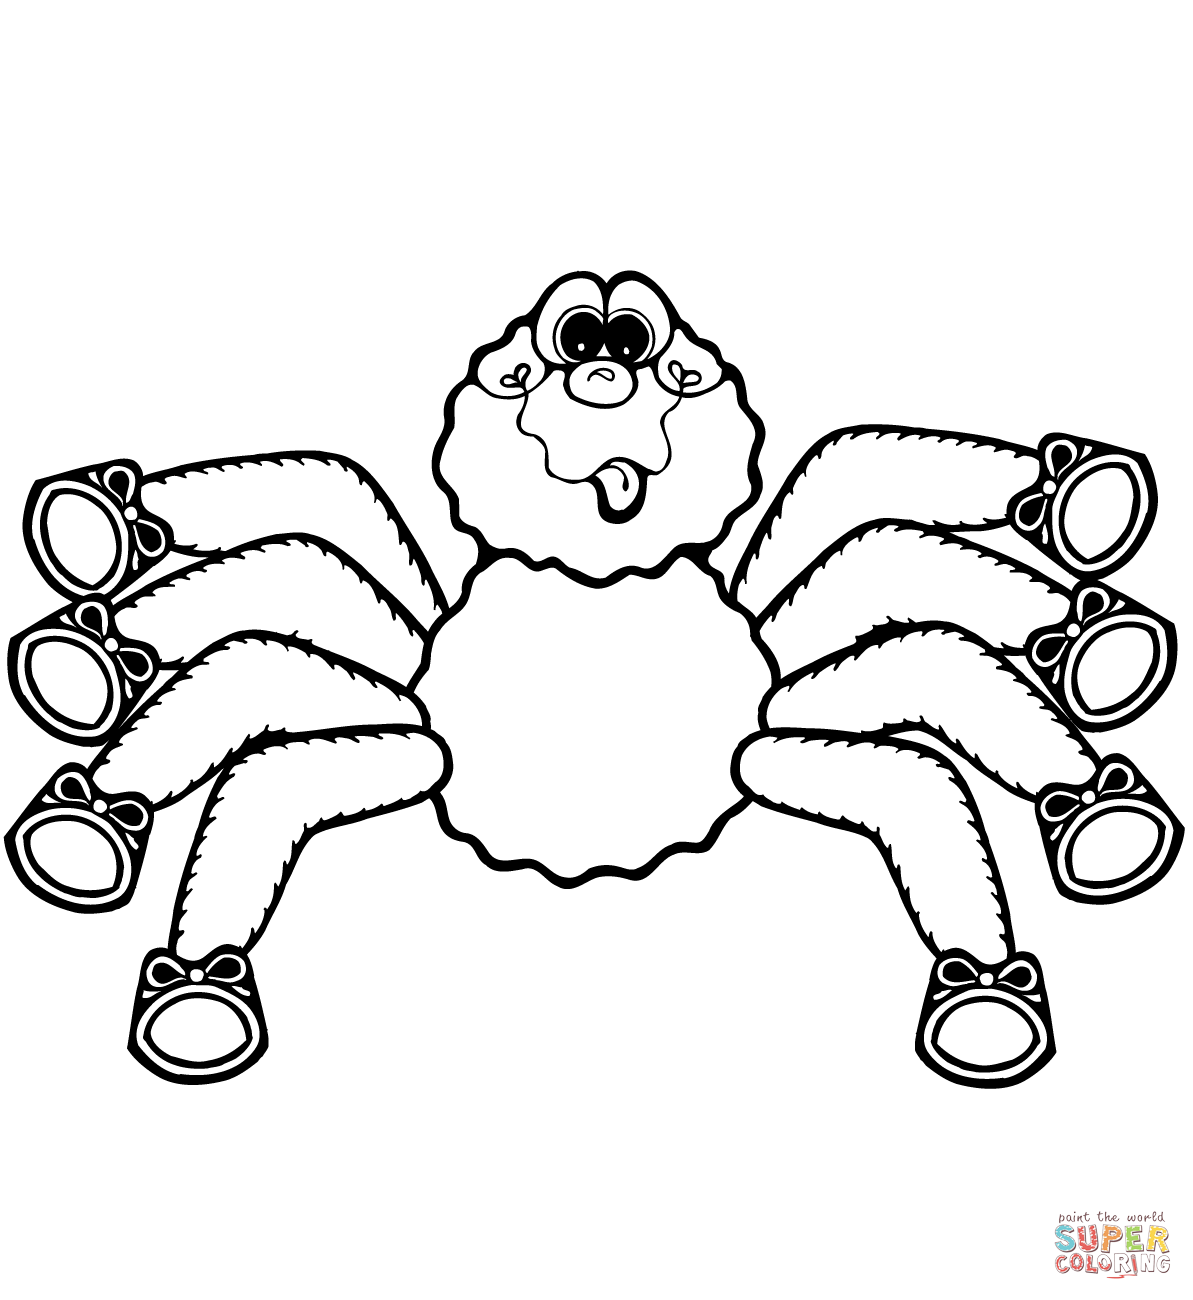 1193x1300 Cartoon Spider Coloring Page Free Printable Coloring Pages